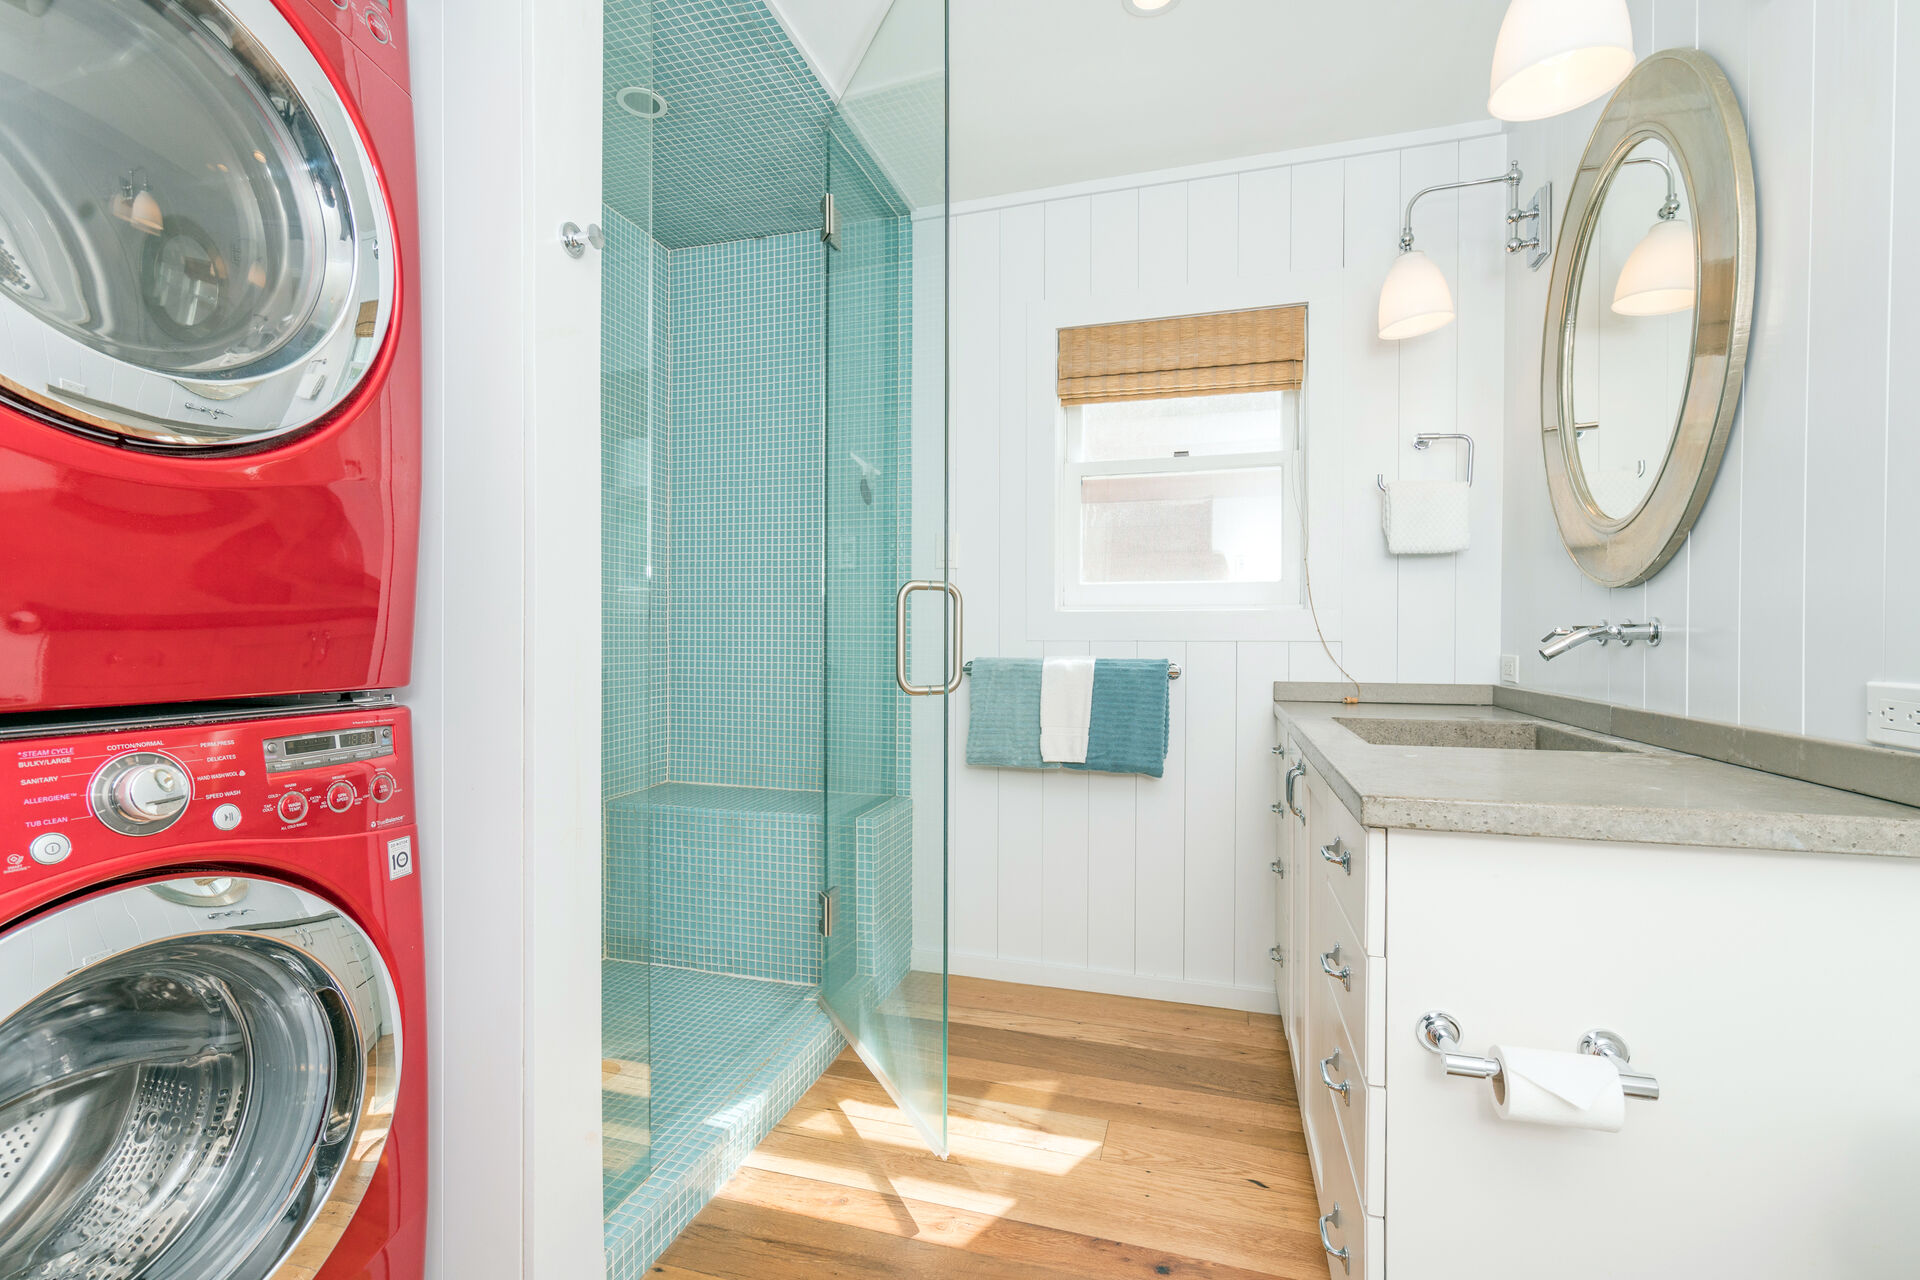 Shower and laundry room.